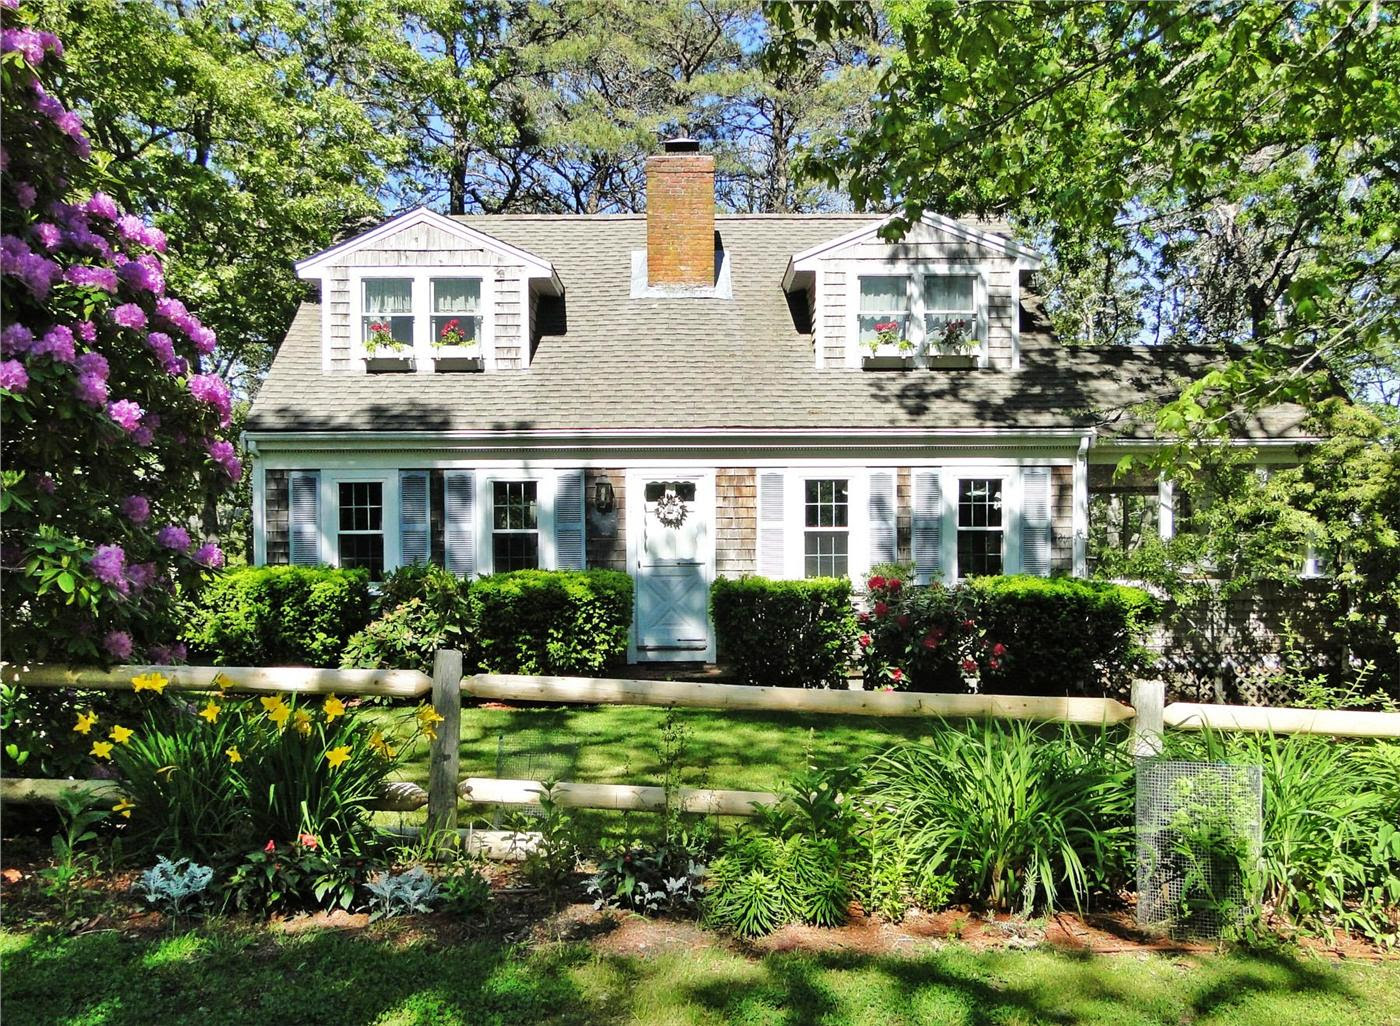 Harwich Vacation Rental home in Cape Cod MA 02661 210